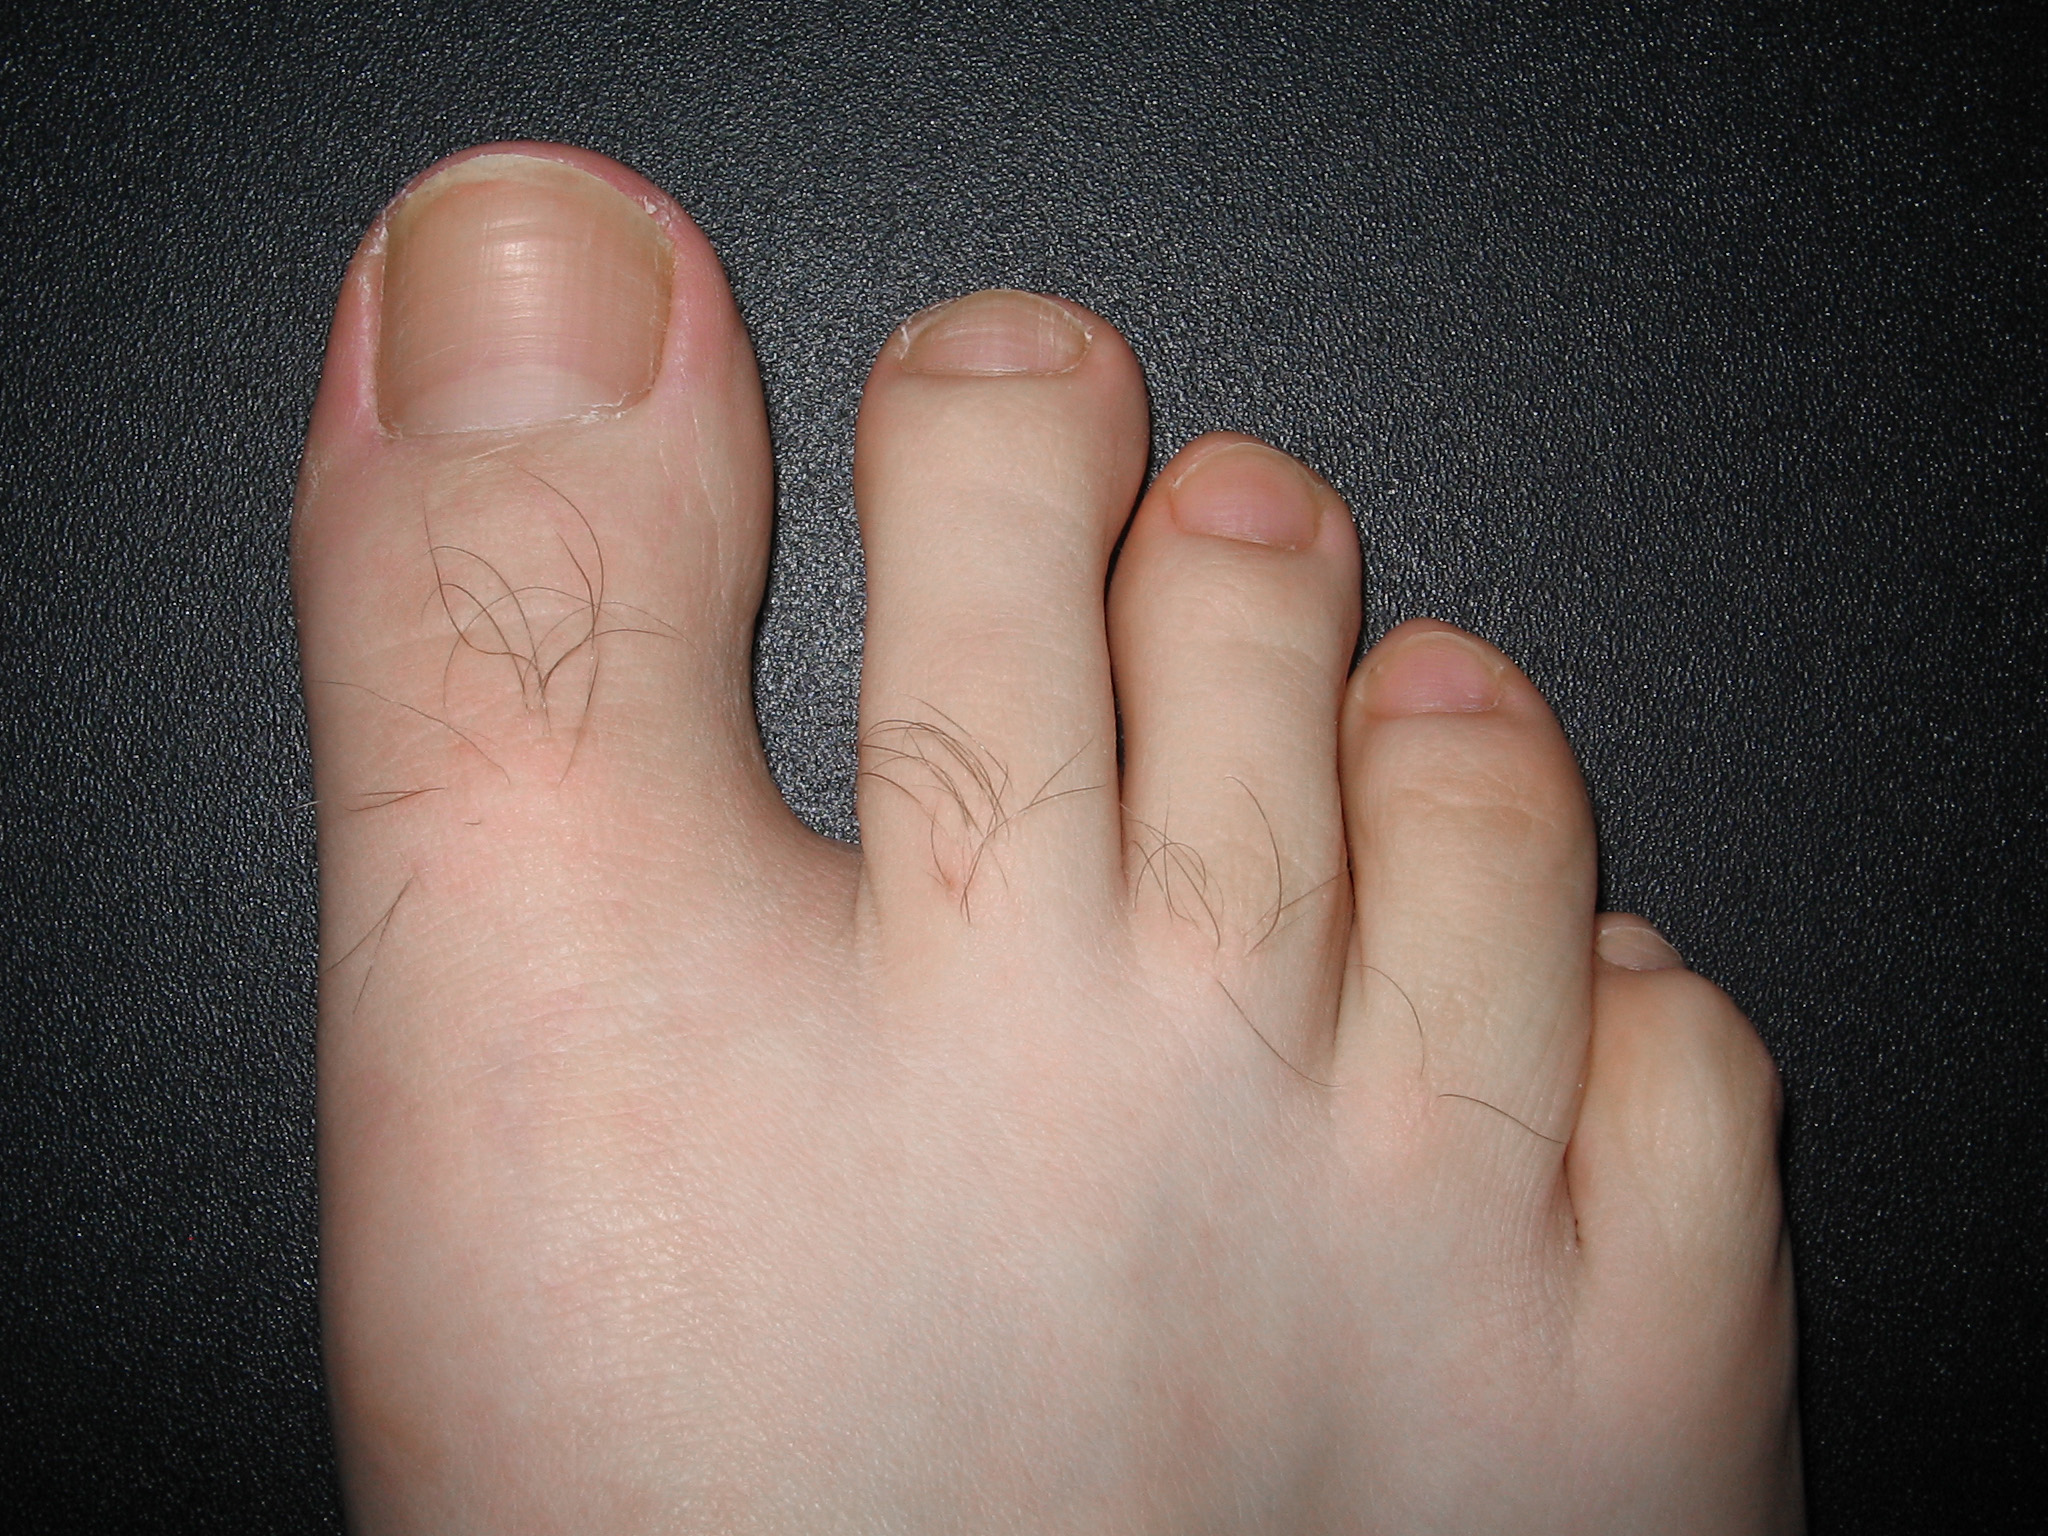 Removal Old Toenail Or Let It Fall Off Naturally